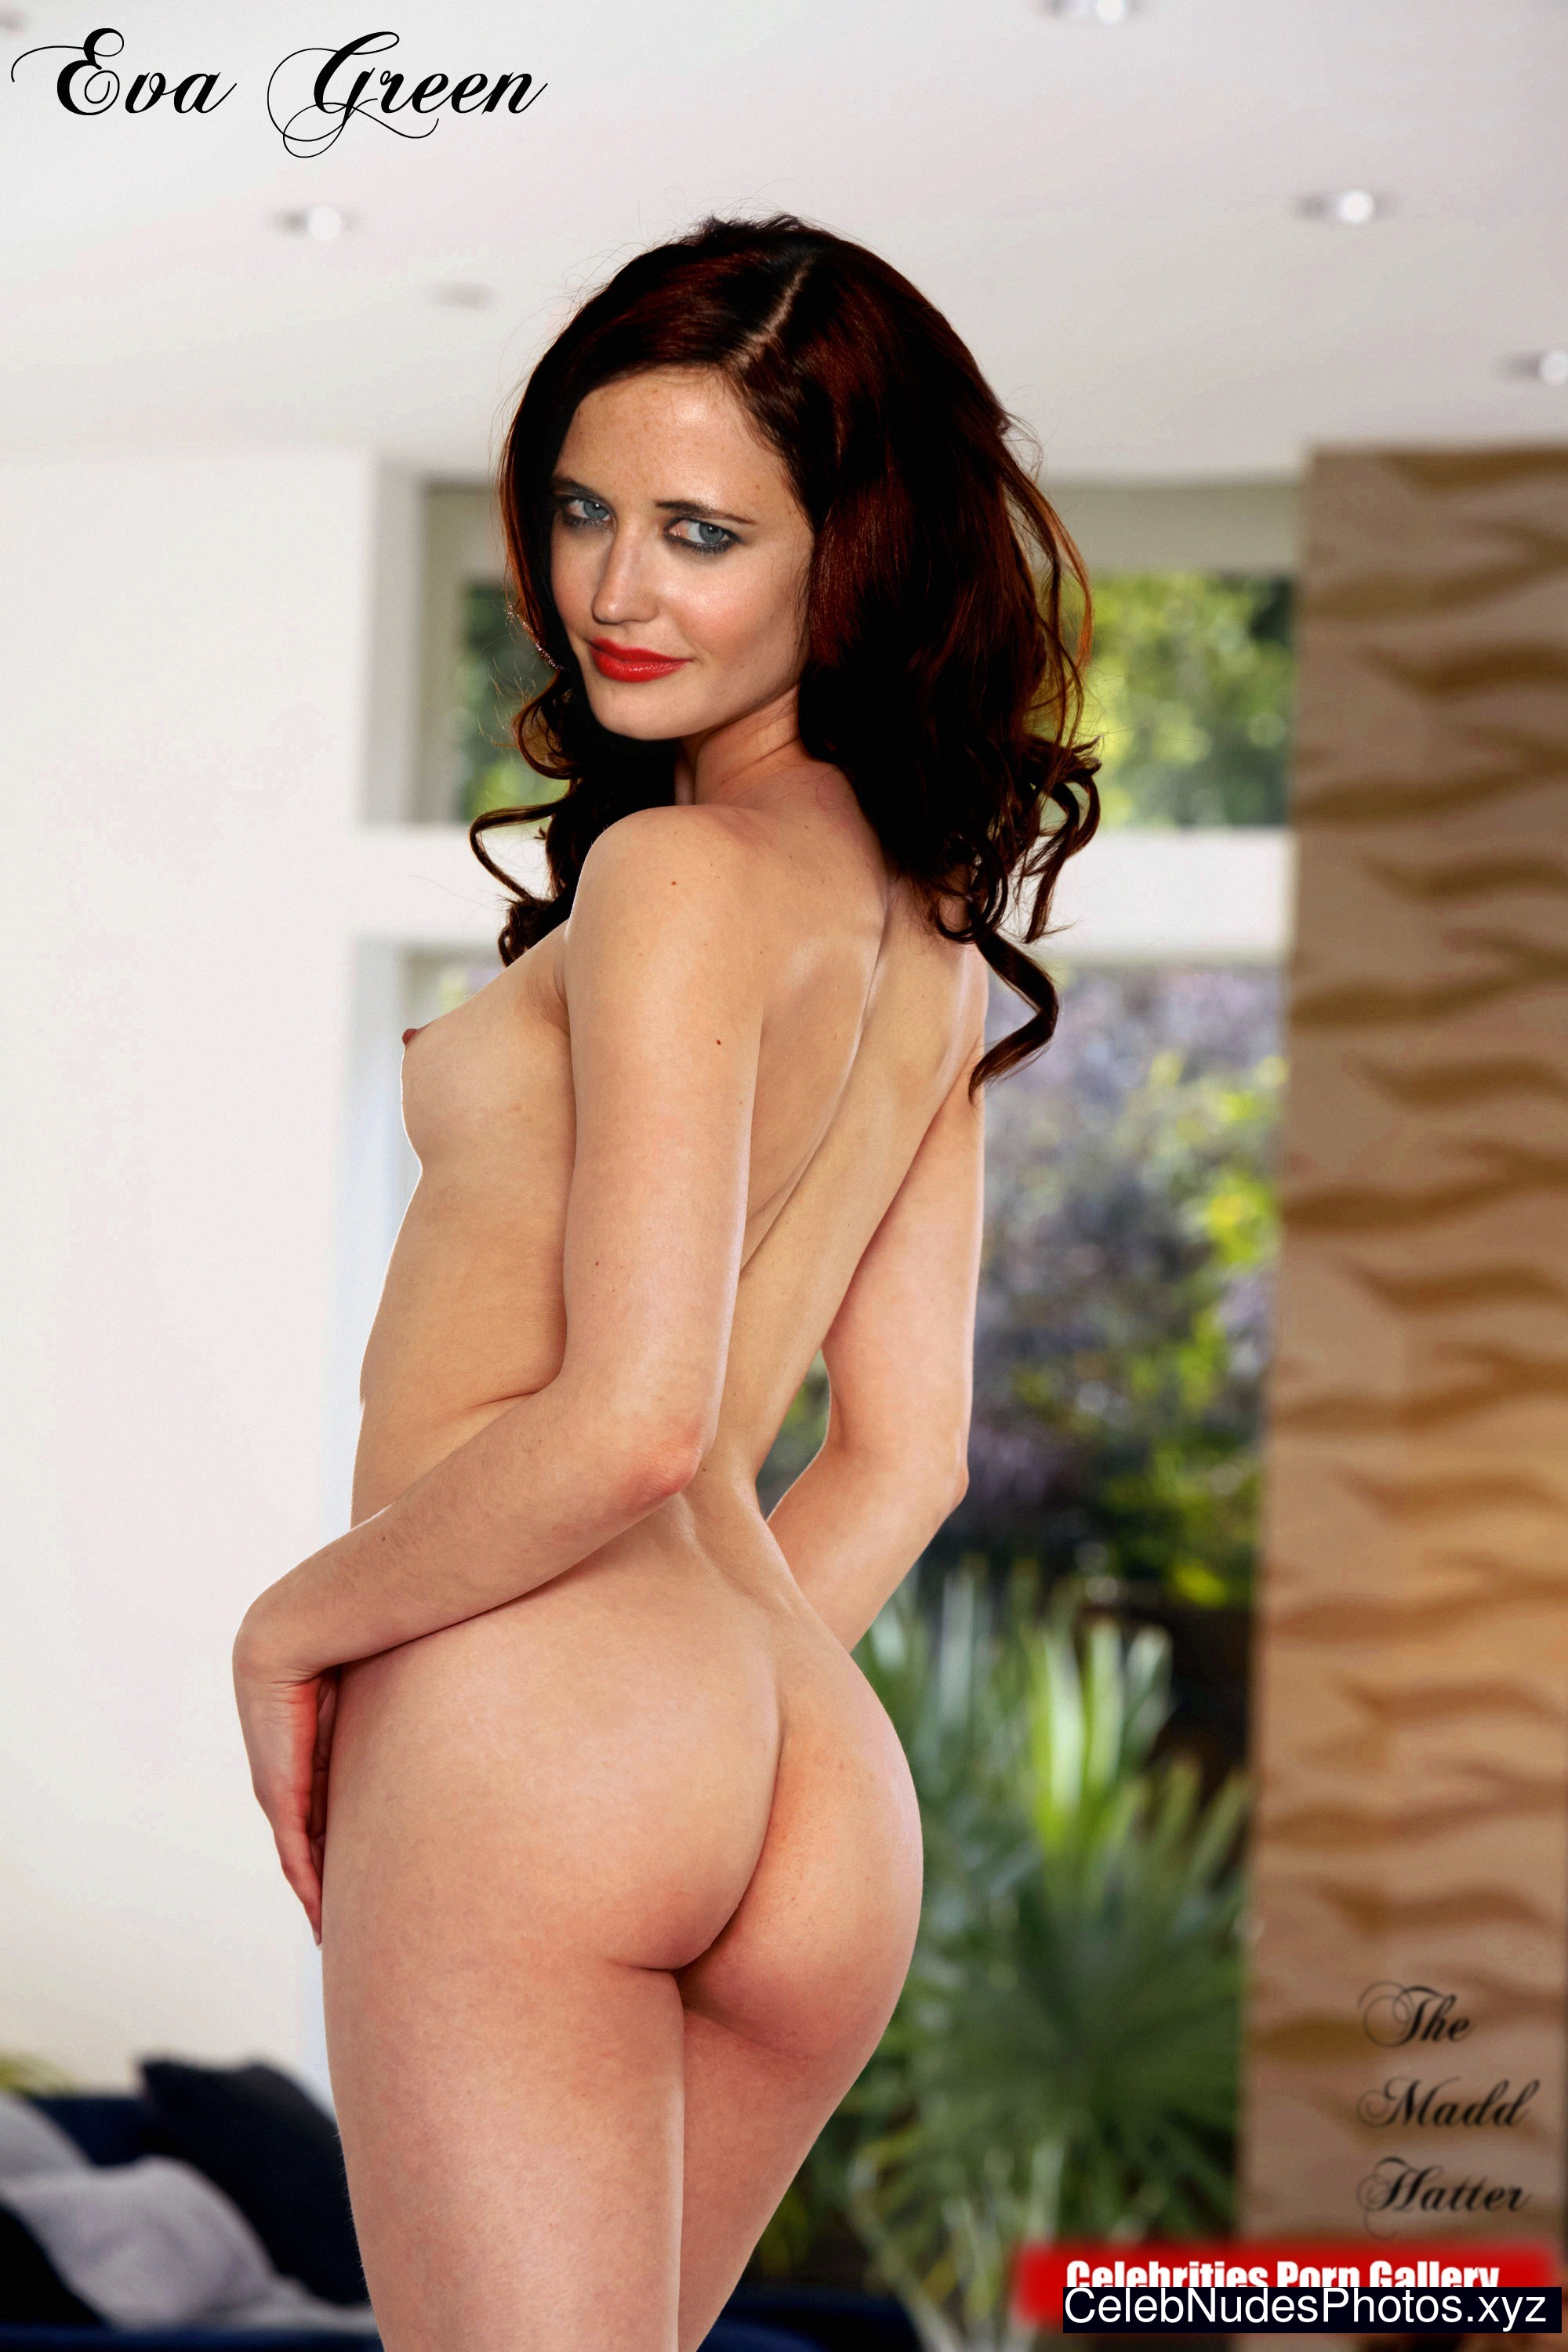 eva green naked fakes